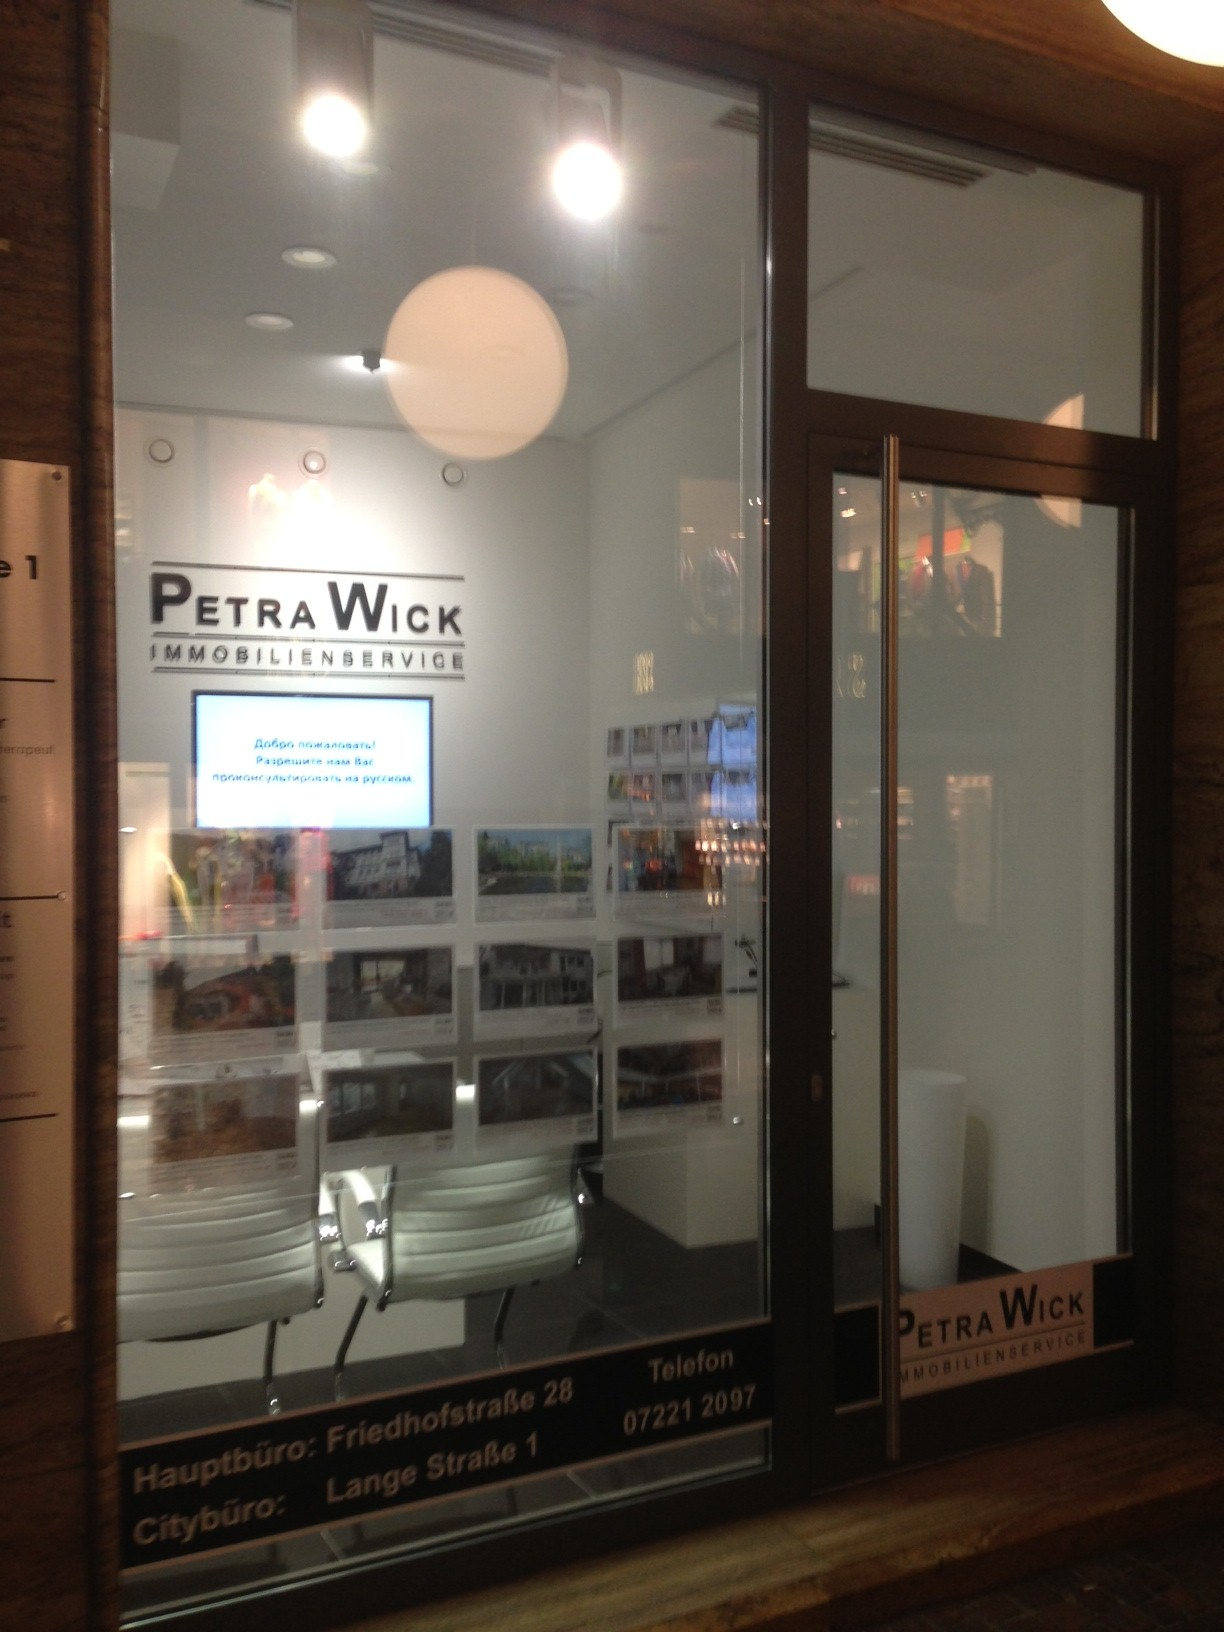 Petra-Wick-Immobilienservice